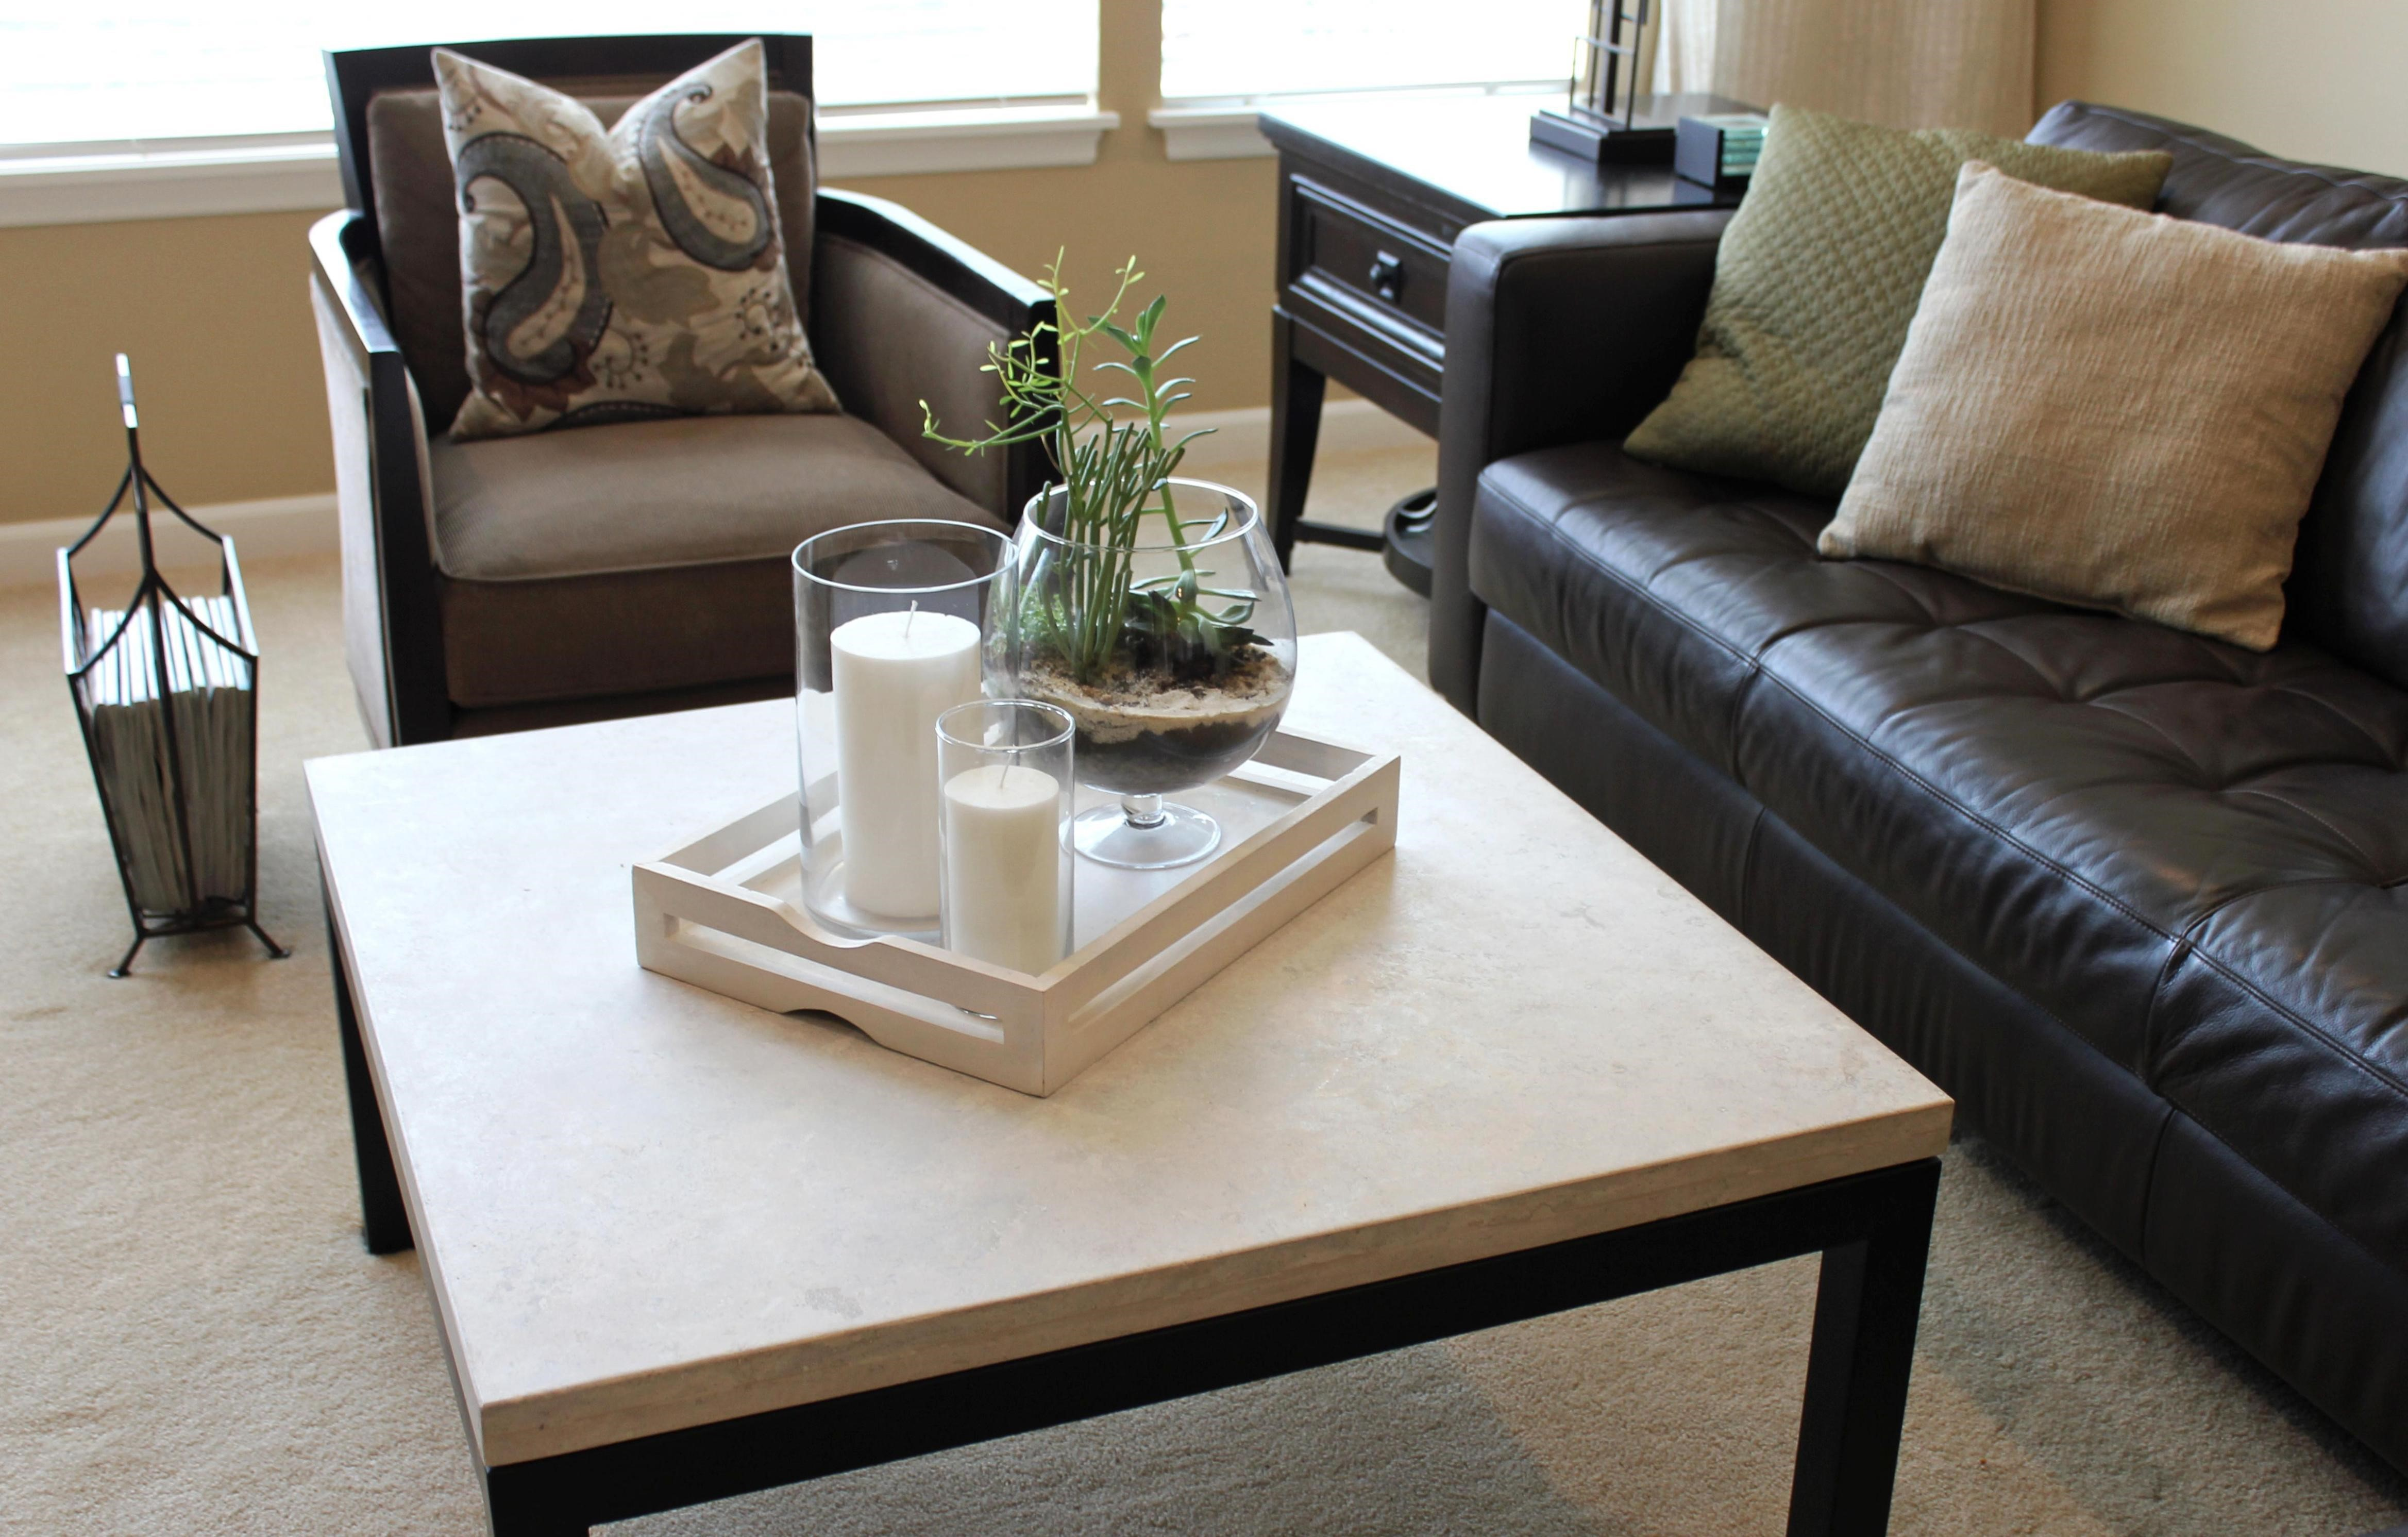 furniture pier one coffee table sofa tables end accent anywhere imports chairs circular light grey rug decorative boxes with lids wrought iron patio dining marble side living room